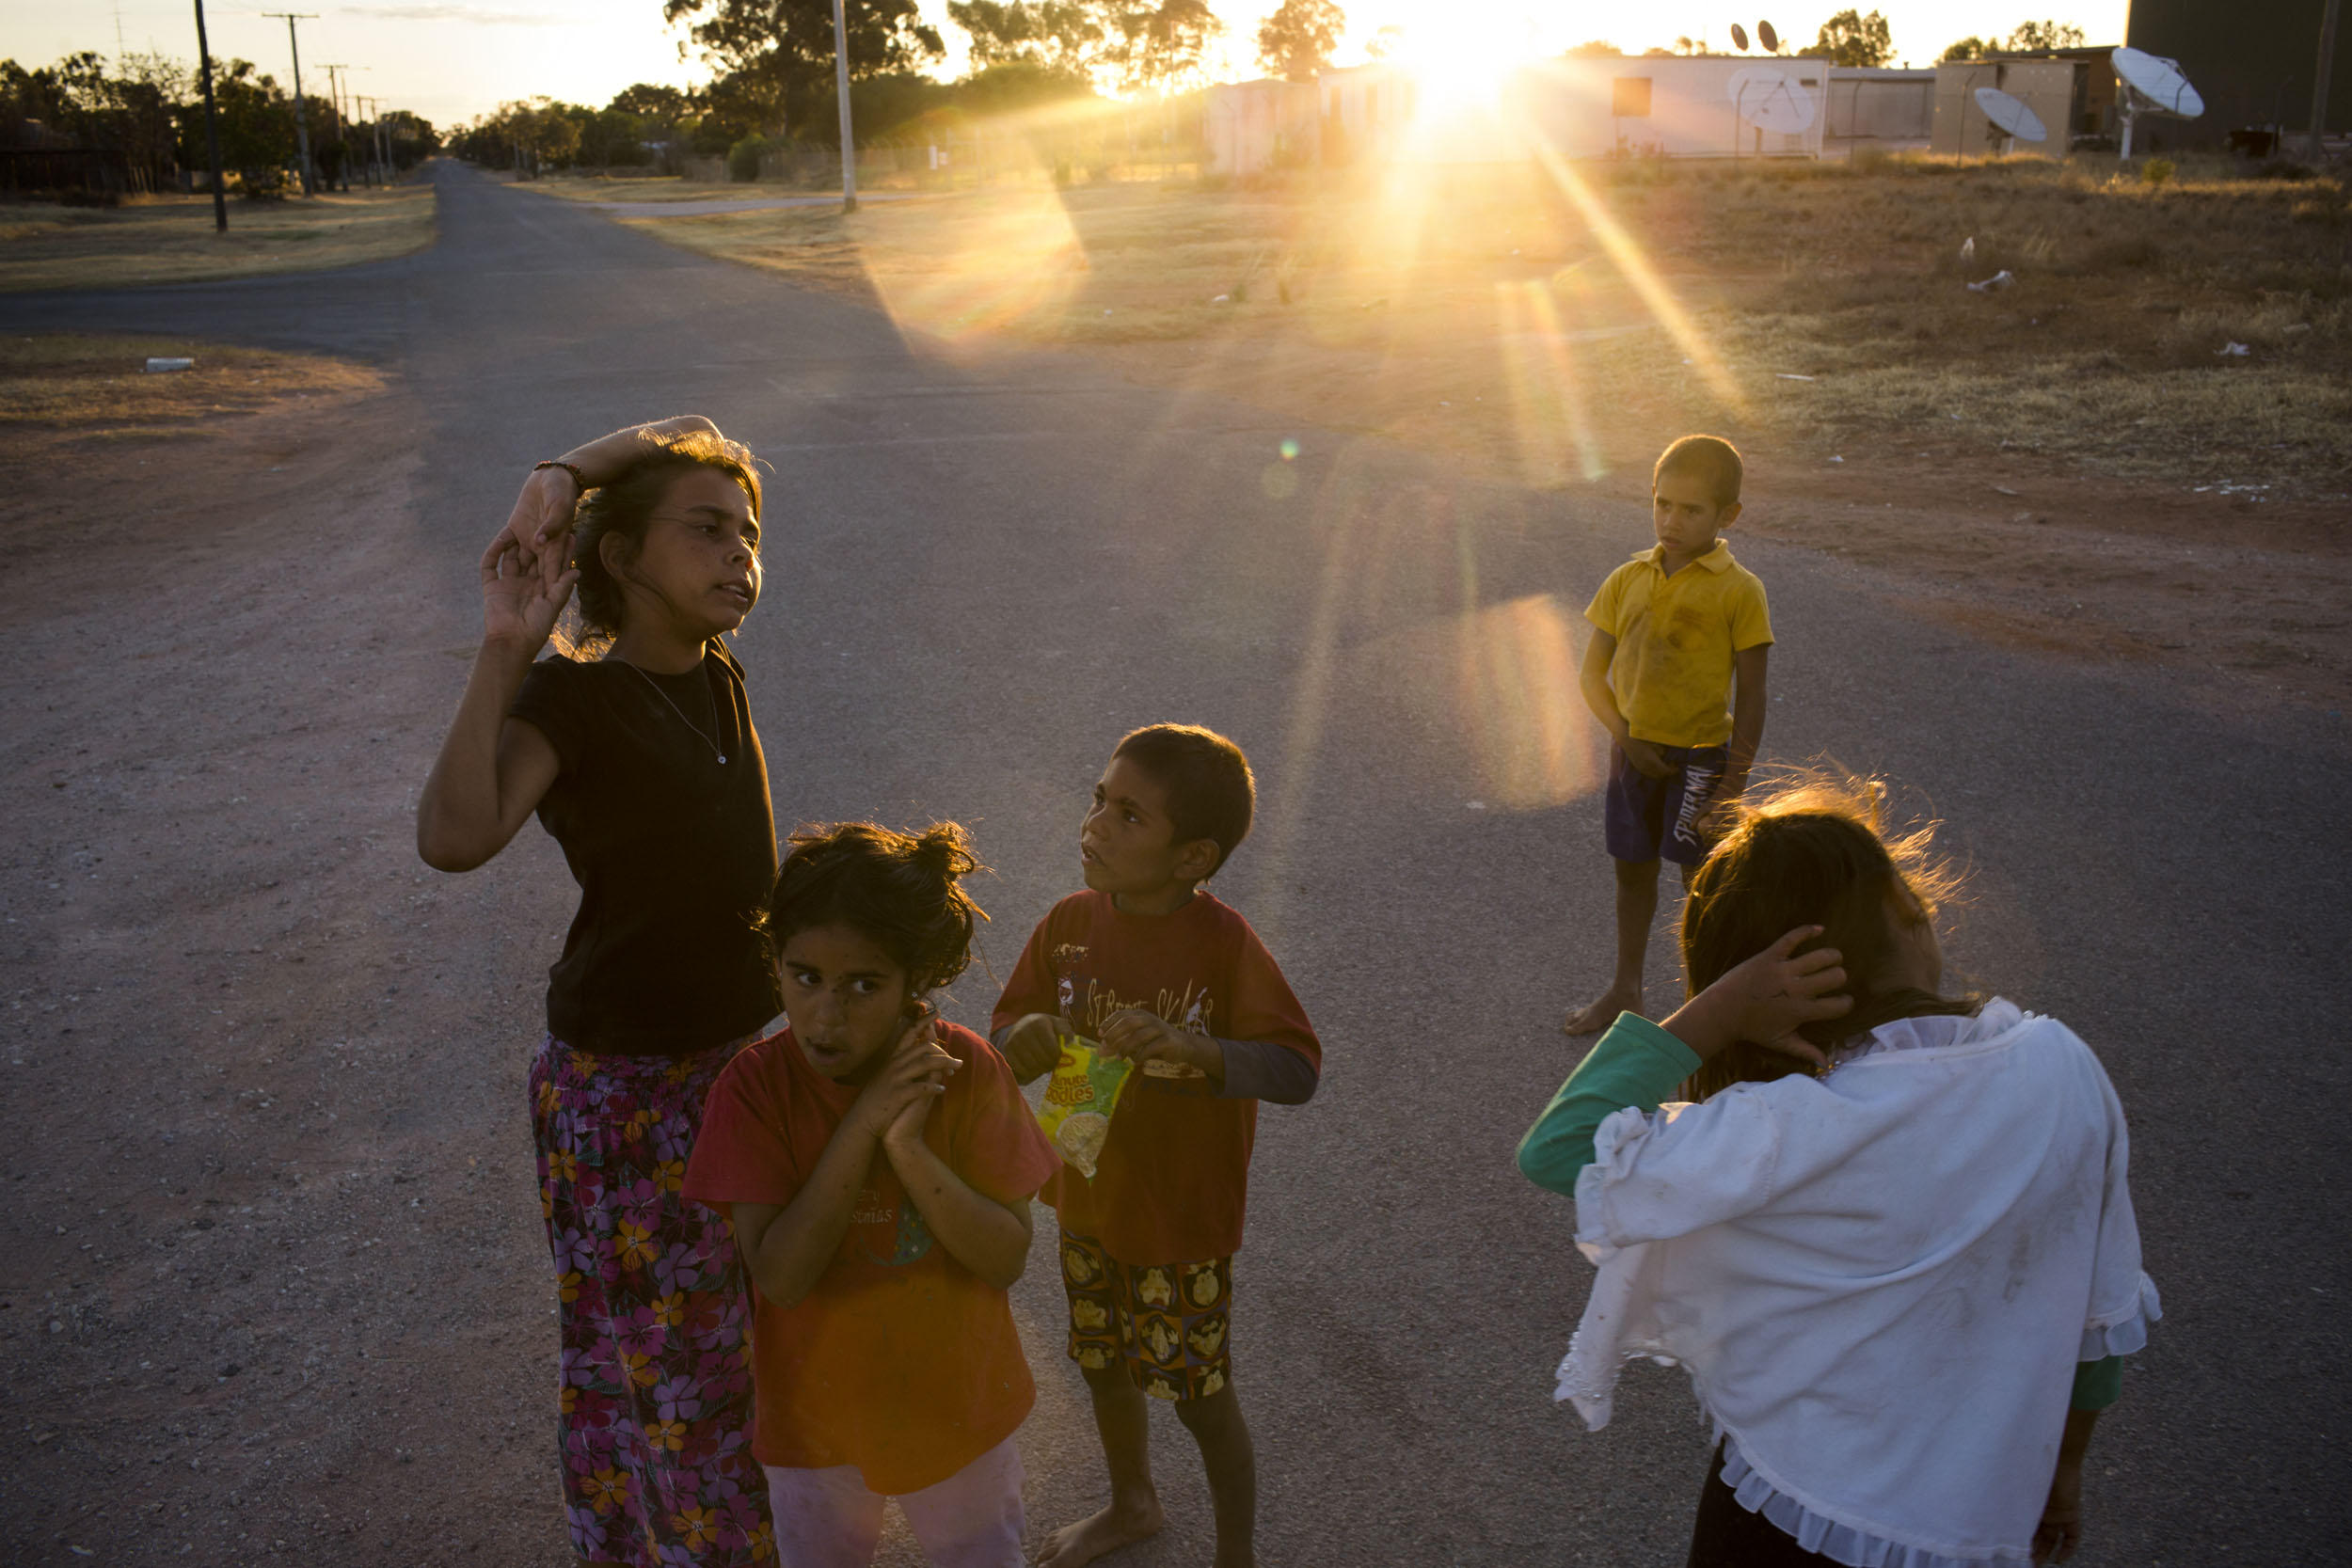 Local Barkindji children at the end of the day in Wilcannia, NSW.